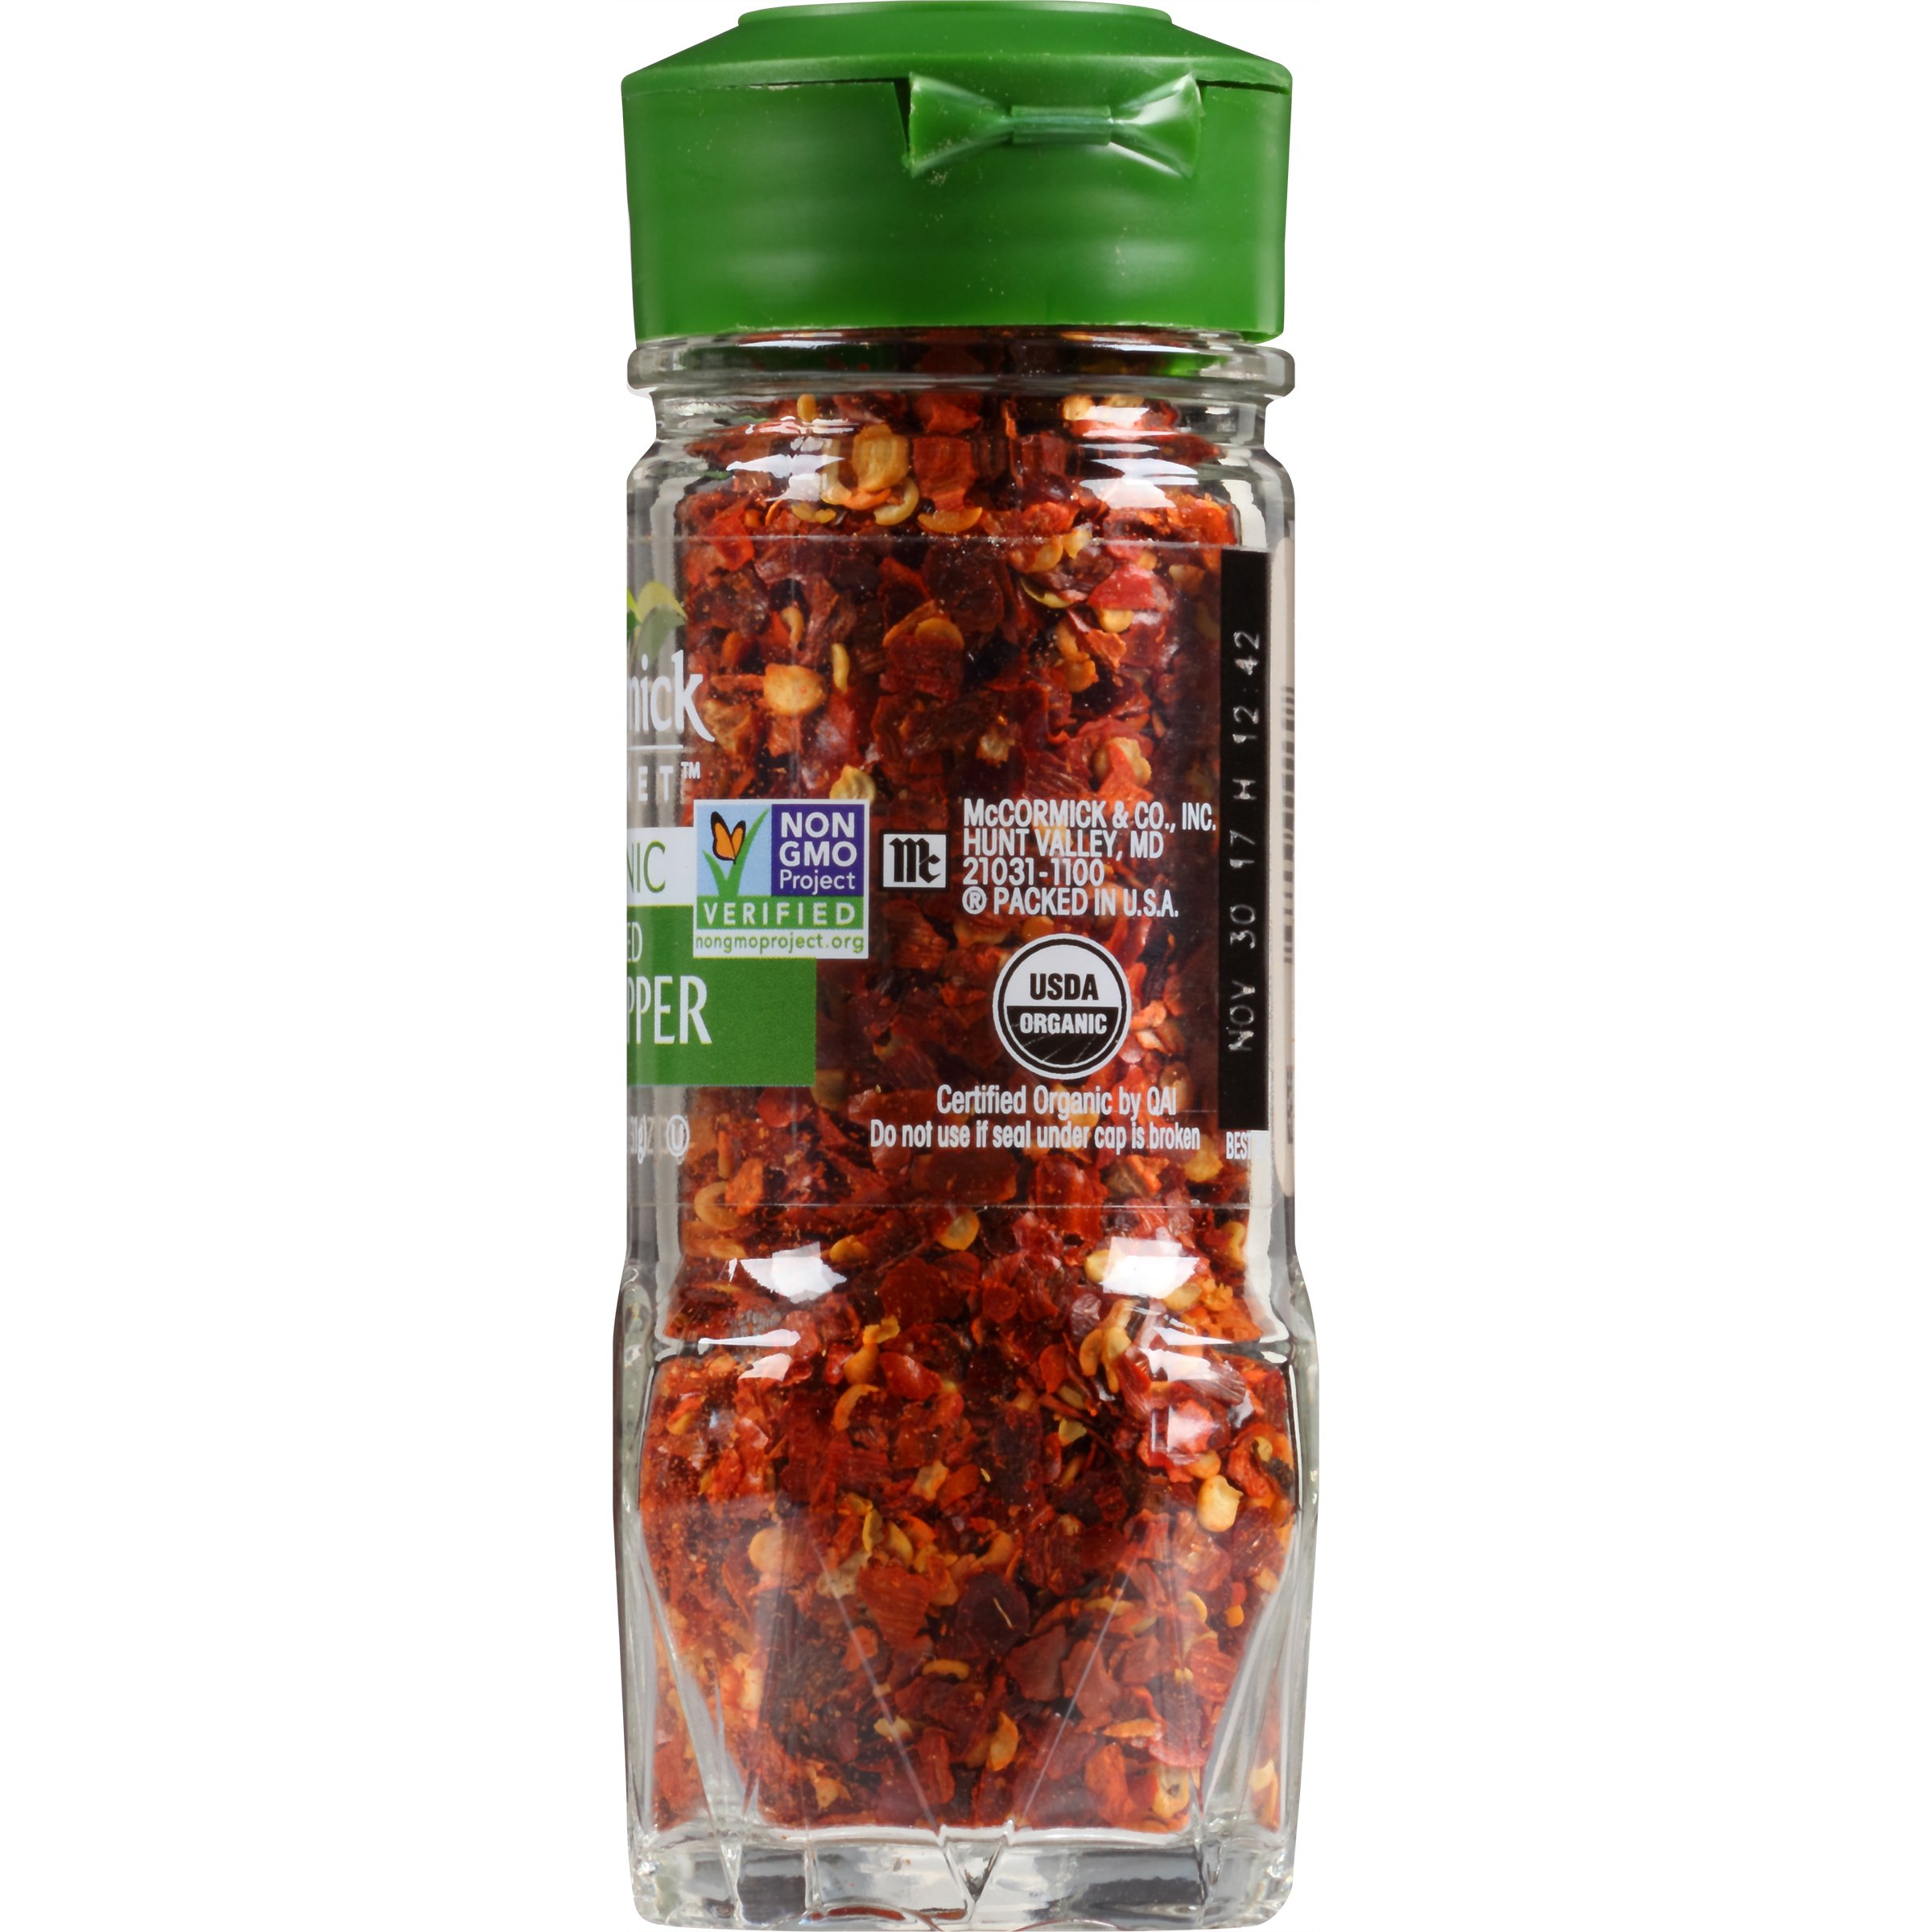 McCormick Gourmet 100% Organic Crushed Red Pepper, 1.12 oz (Packaging May Vary)